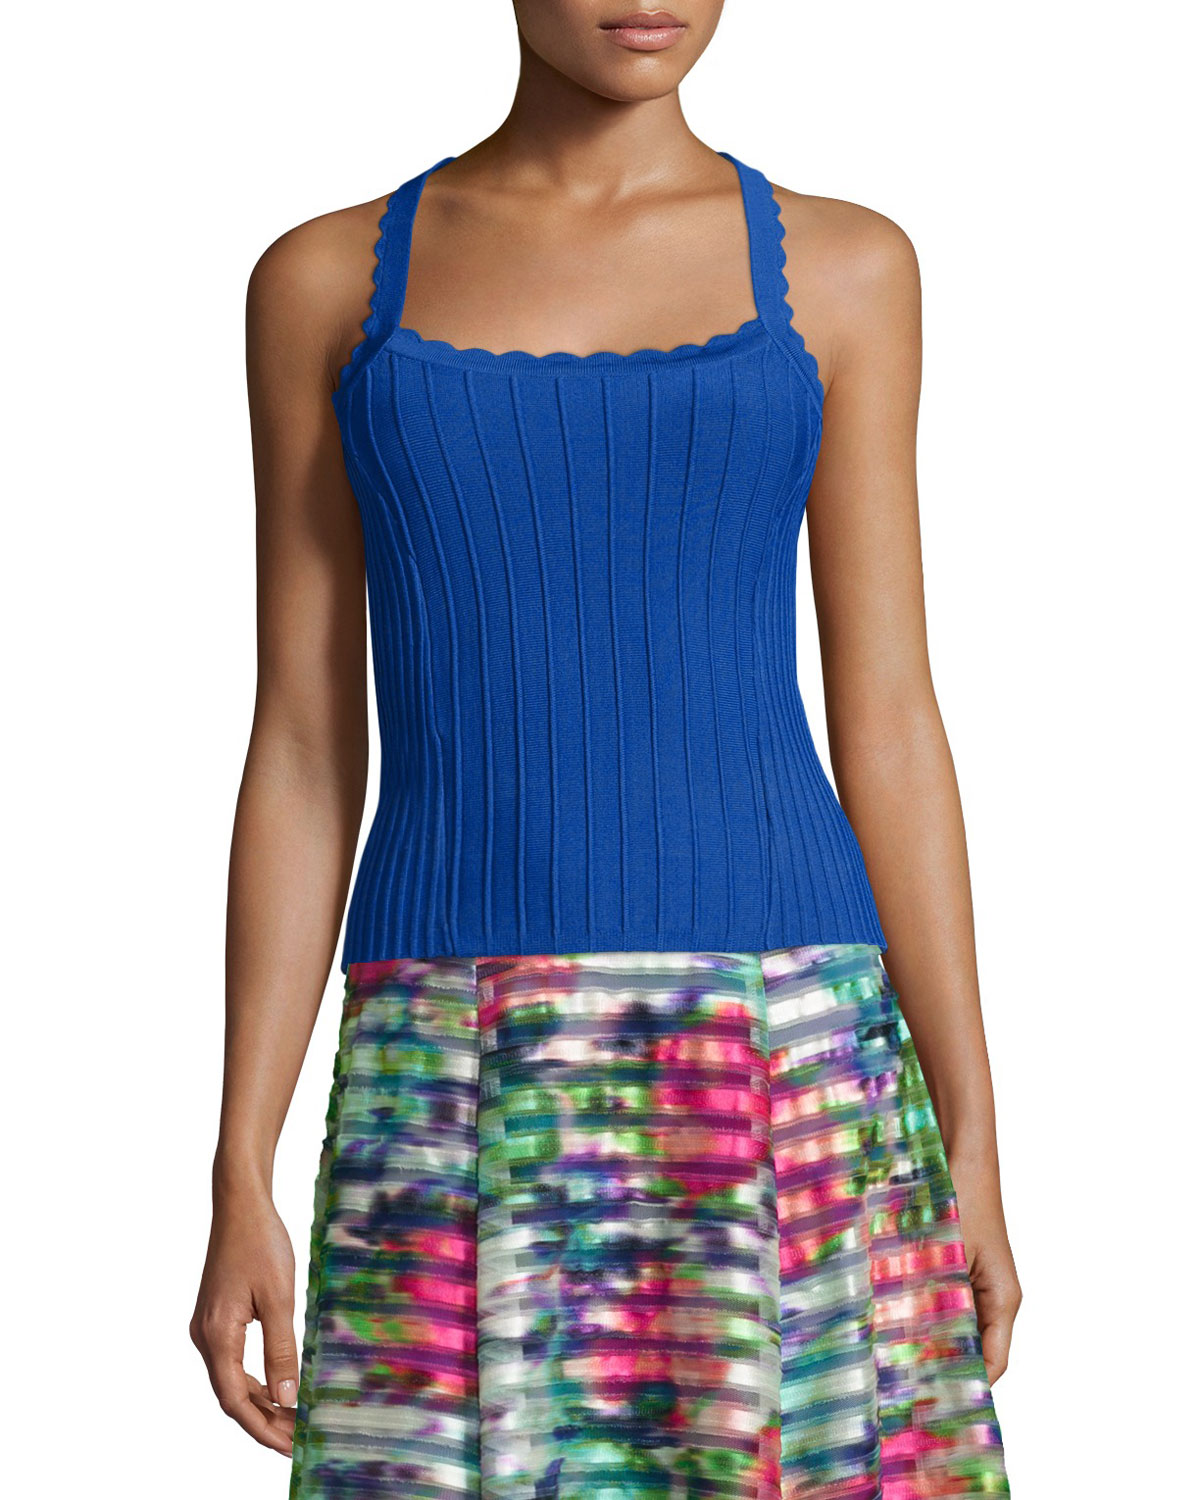 Sleeveless Ribbed Top with Scalloped Straps, Size: LARGE, Blue - Nanette Lepore